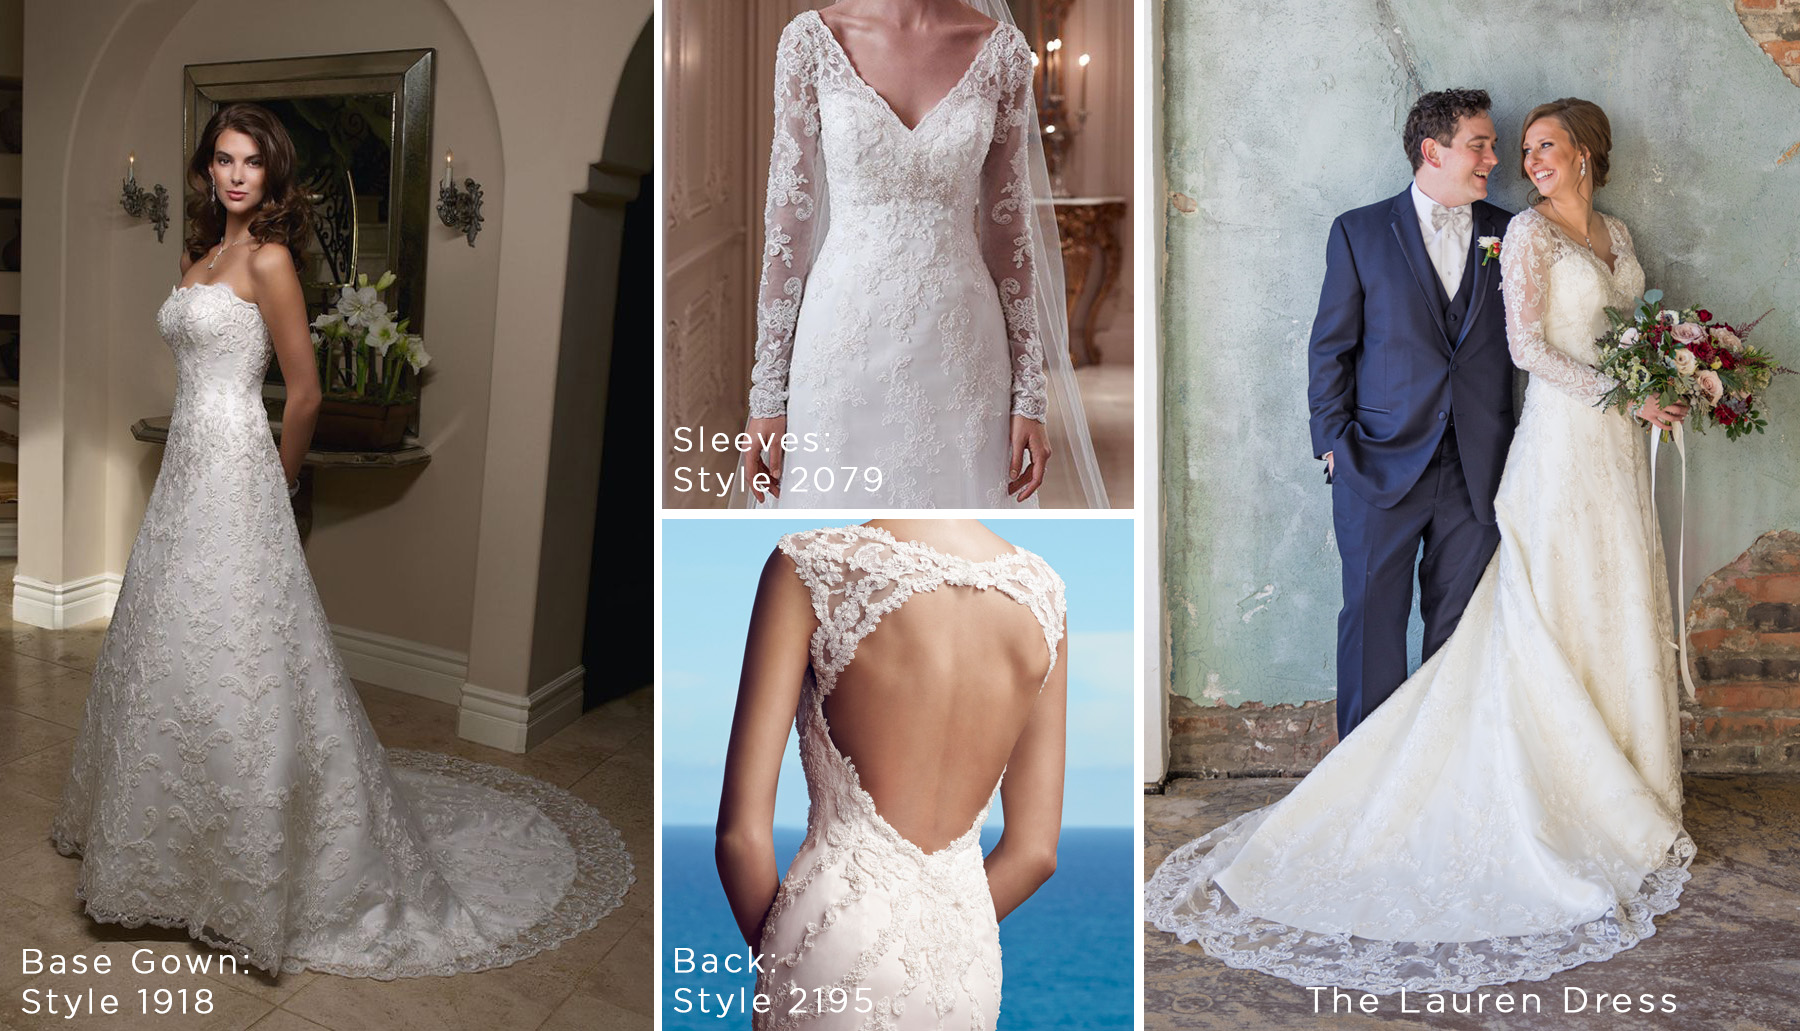 Casablanca Bride Lauren Visited Our Authorized Retail Partner White Lace Promises In Knoxville Tennessee She Writes Of Her Dress Buying Journey I Had A